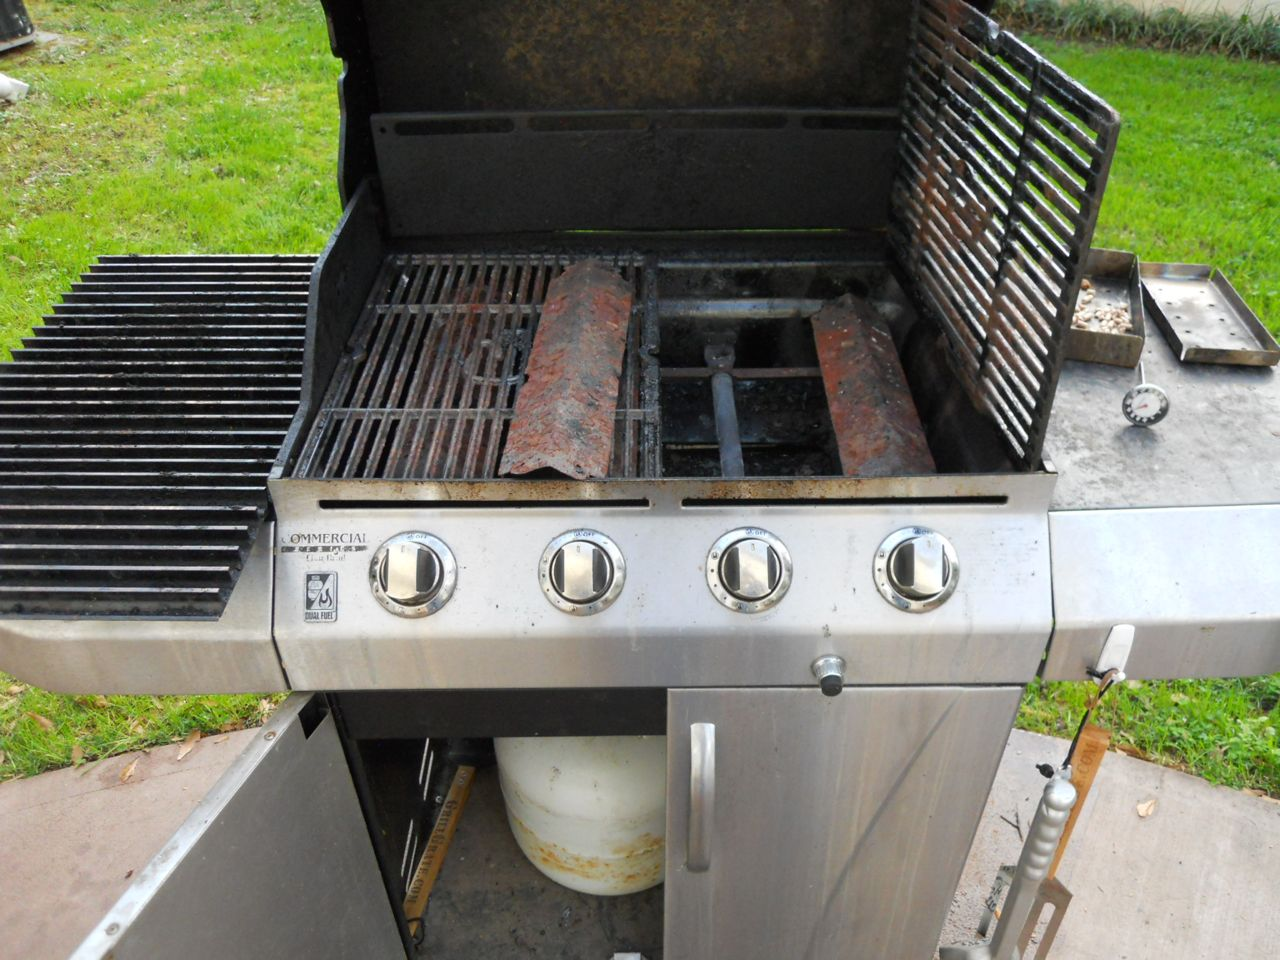 Grilling Grate With Grillgrate The Sorry State Of My